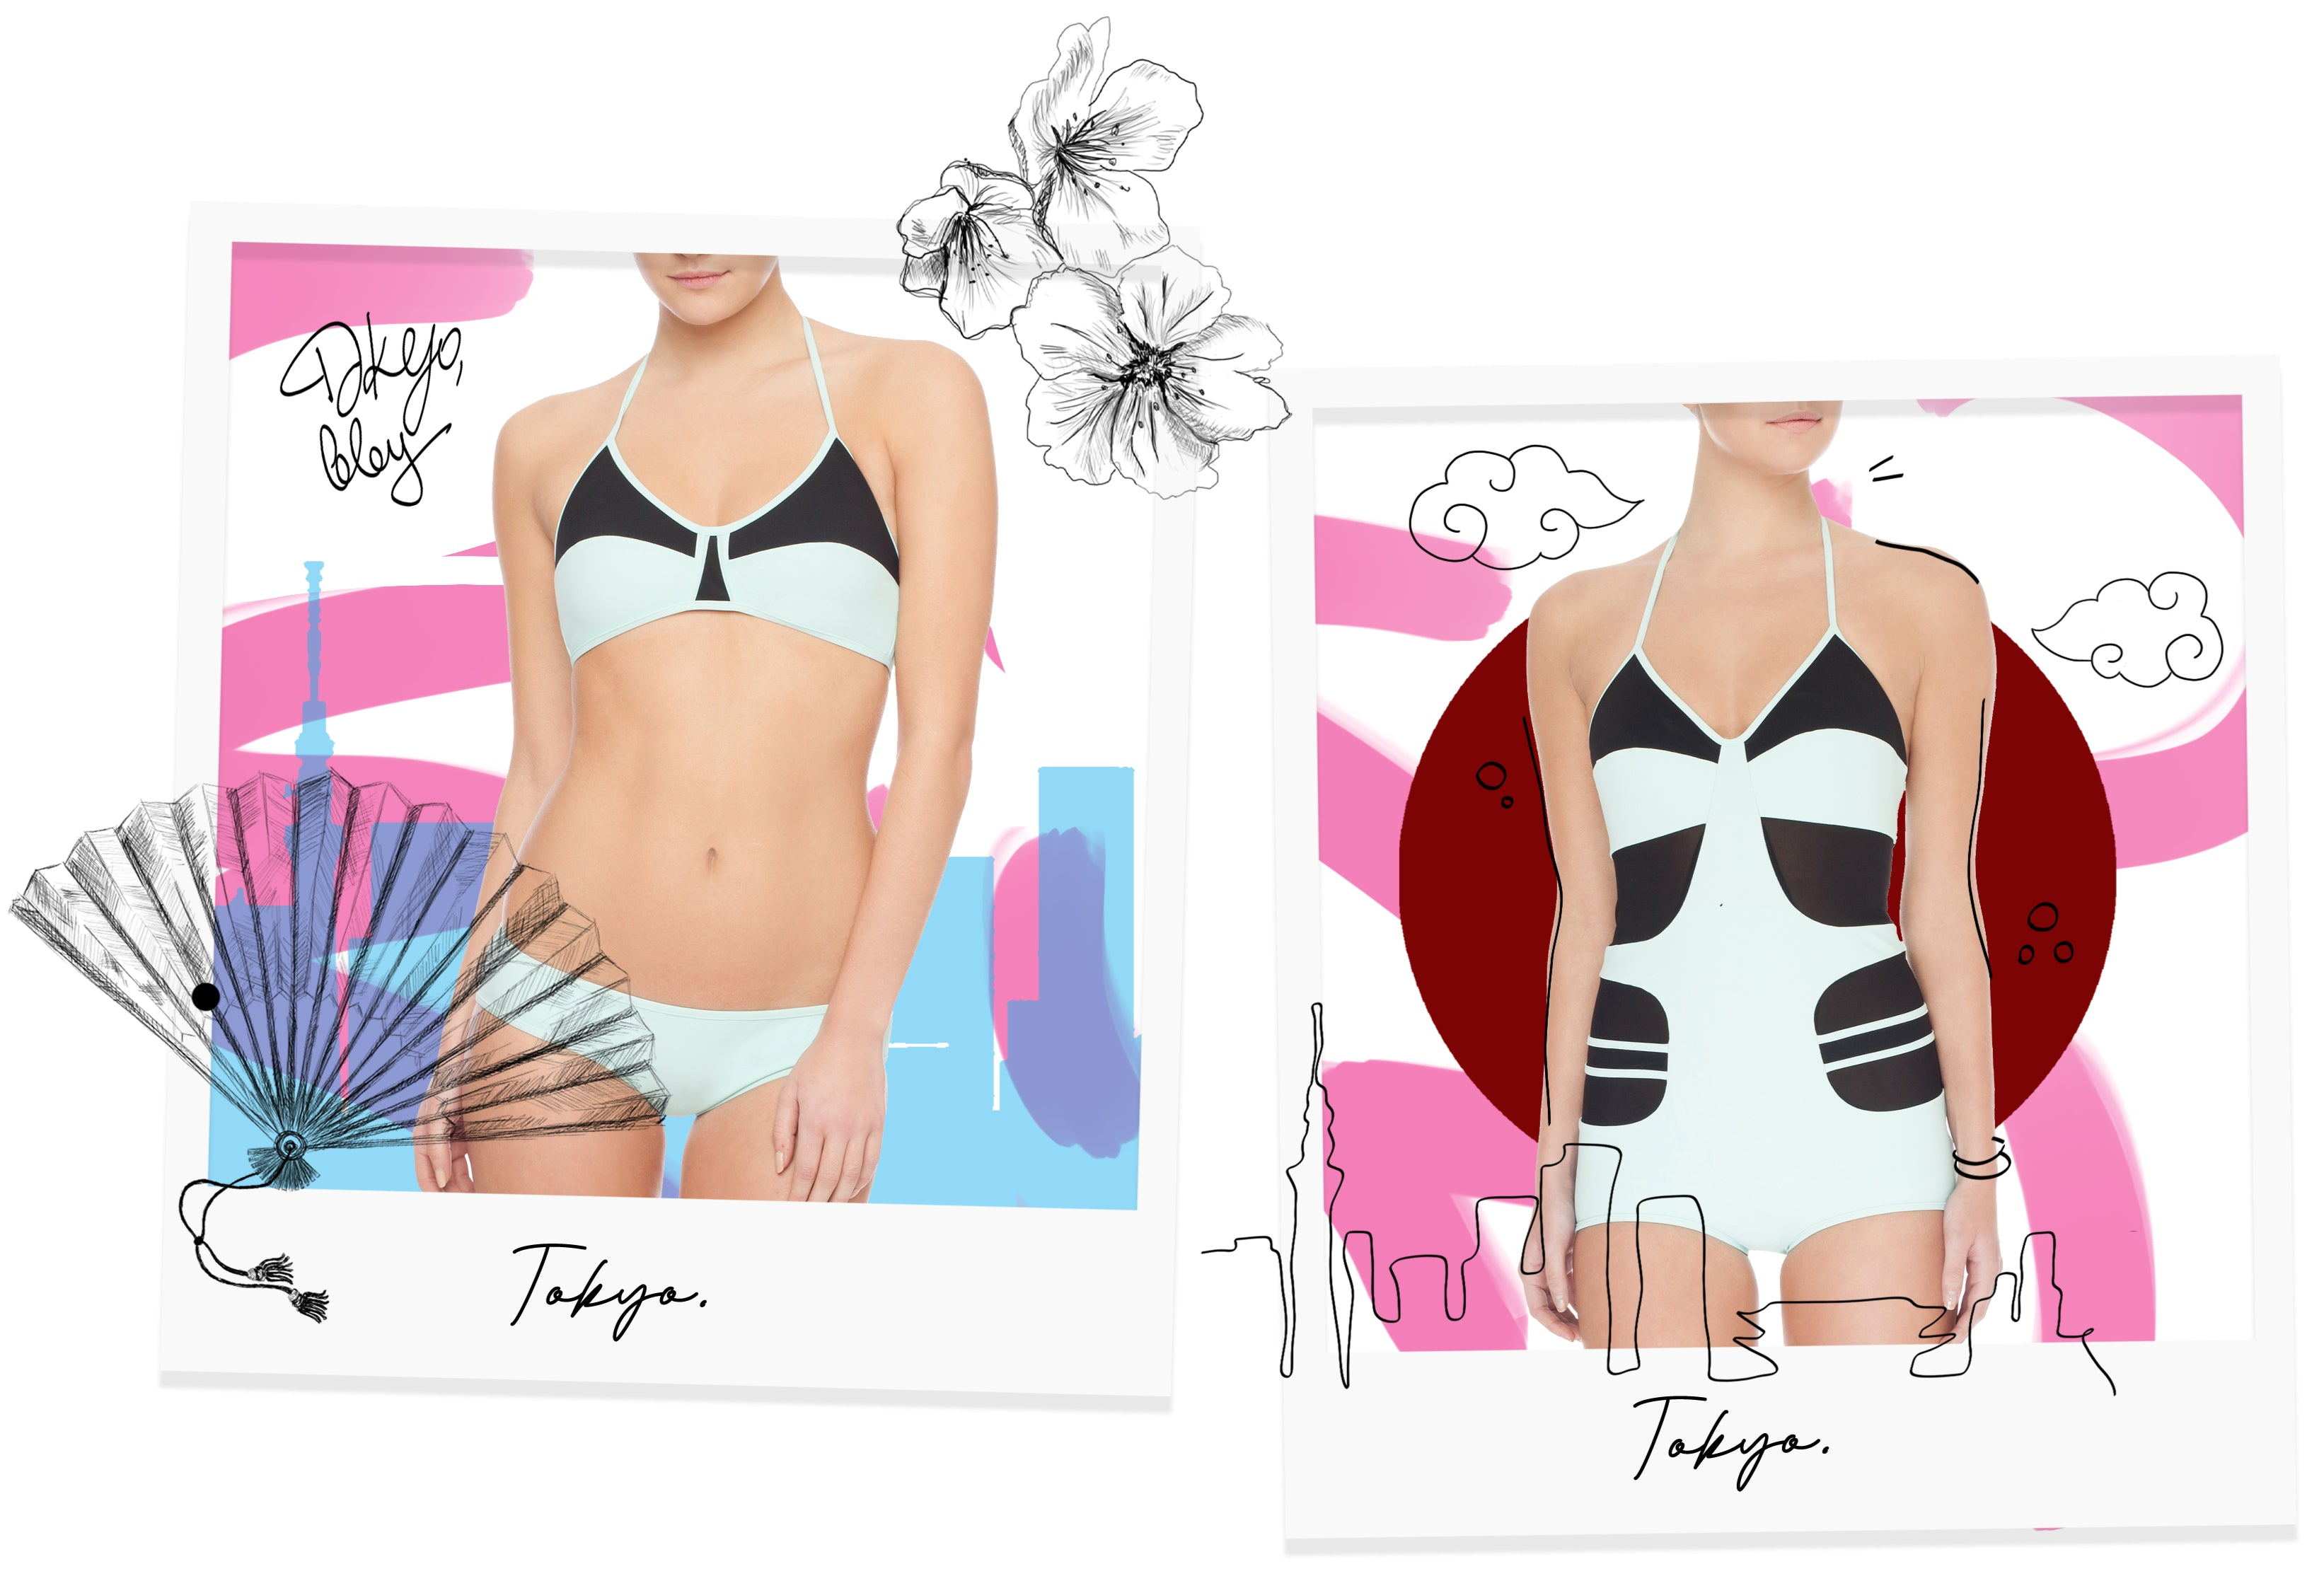 Tokyo Collection being modelled on Polaroid film with pink and blue stripes with Japanese cherry blossoms.